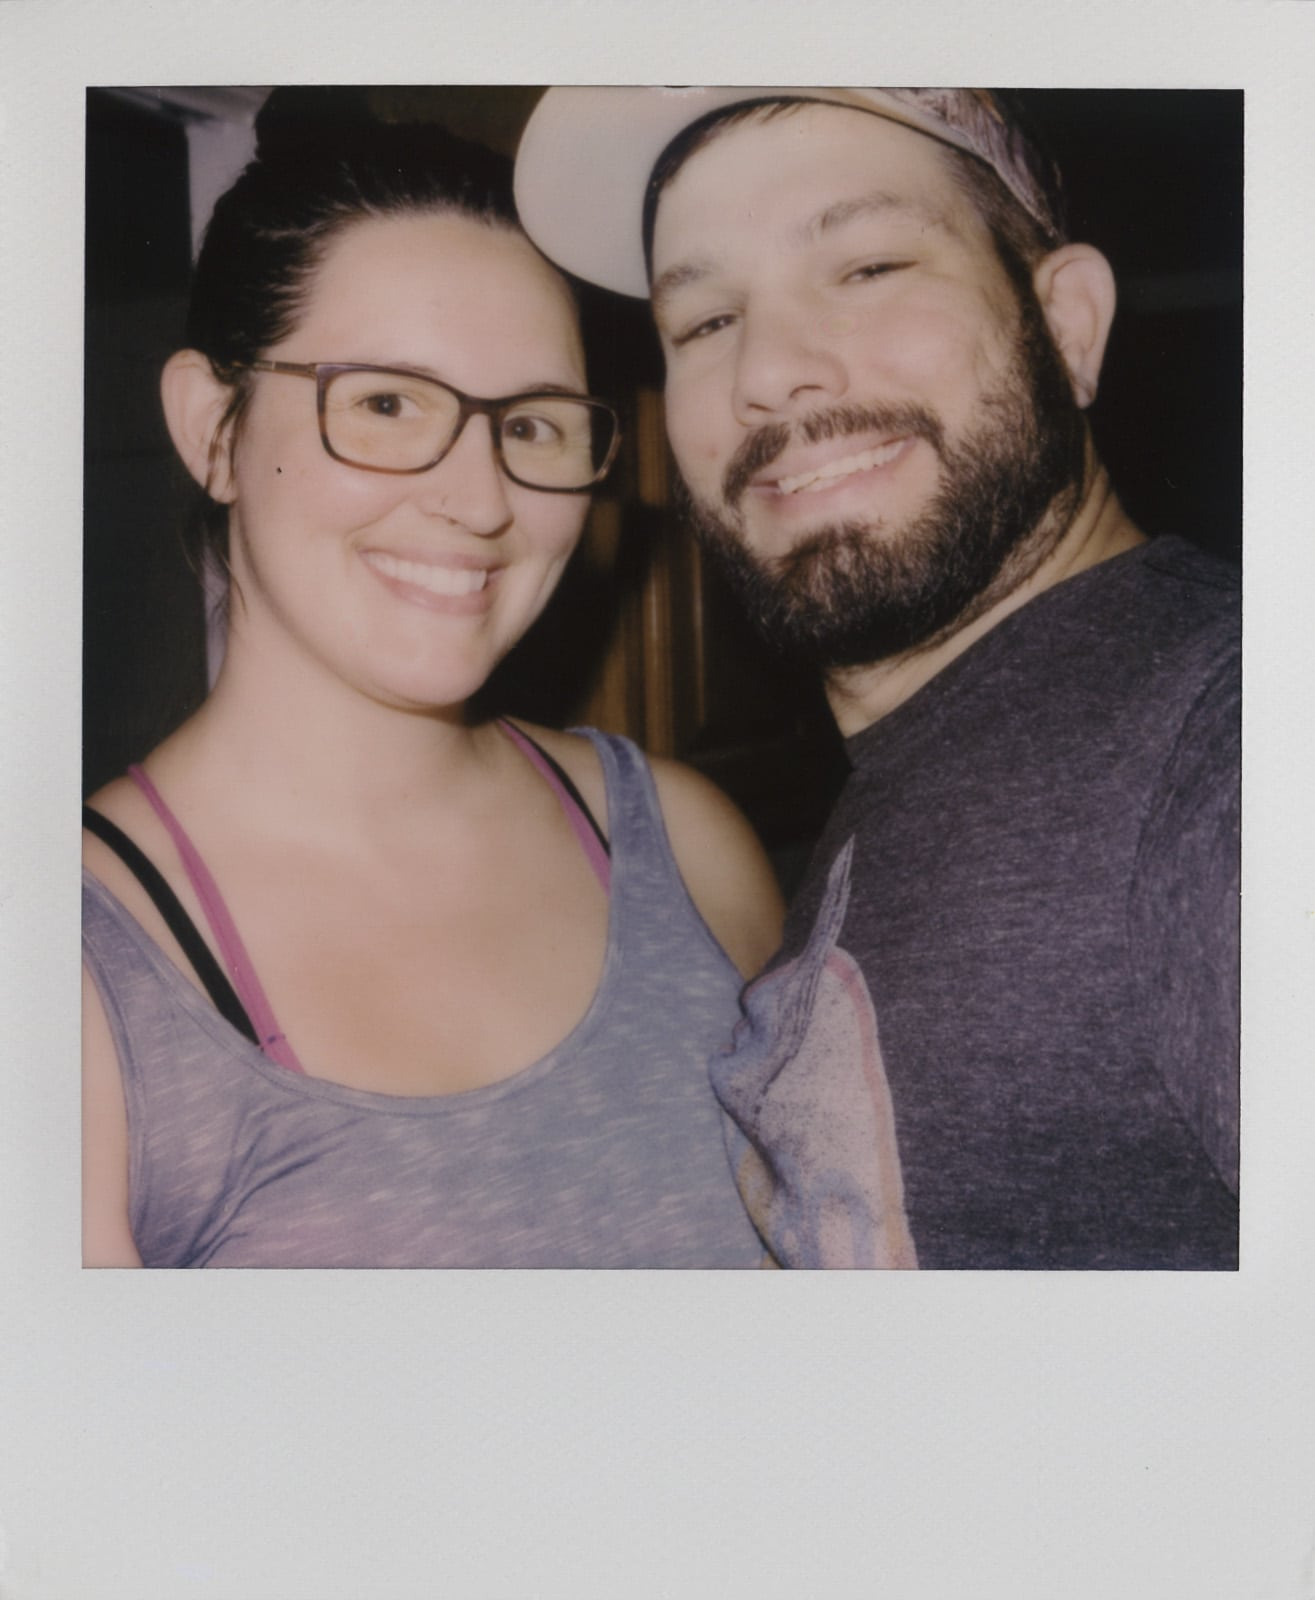 Polaroid photos selfie of us both shortly before we left